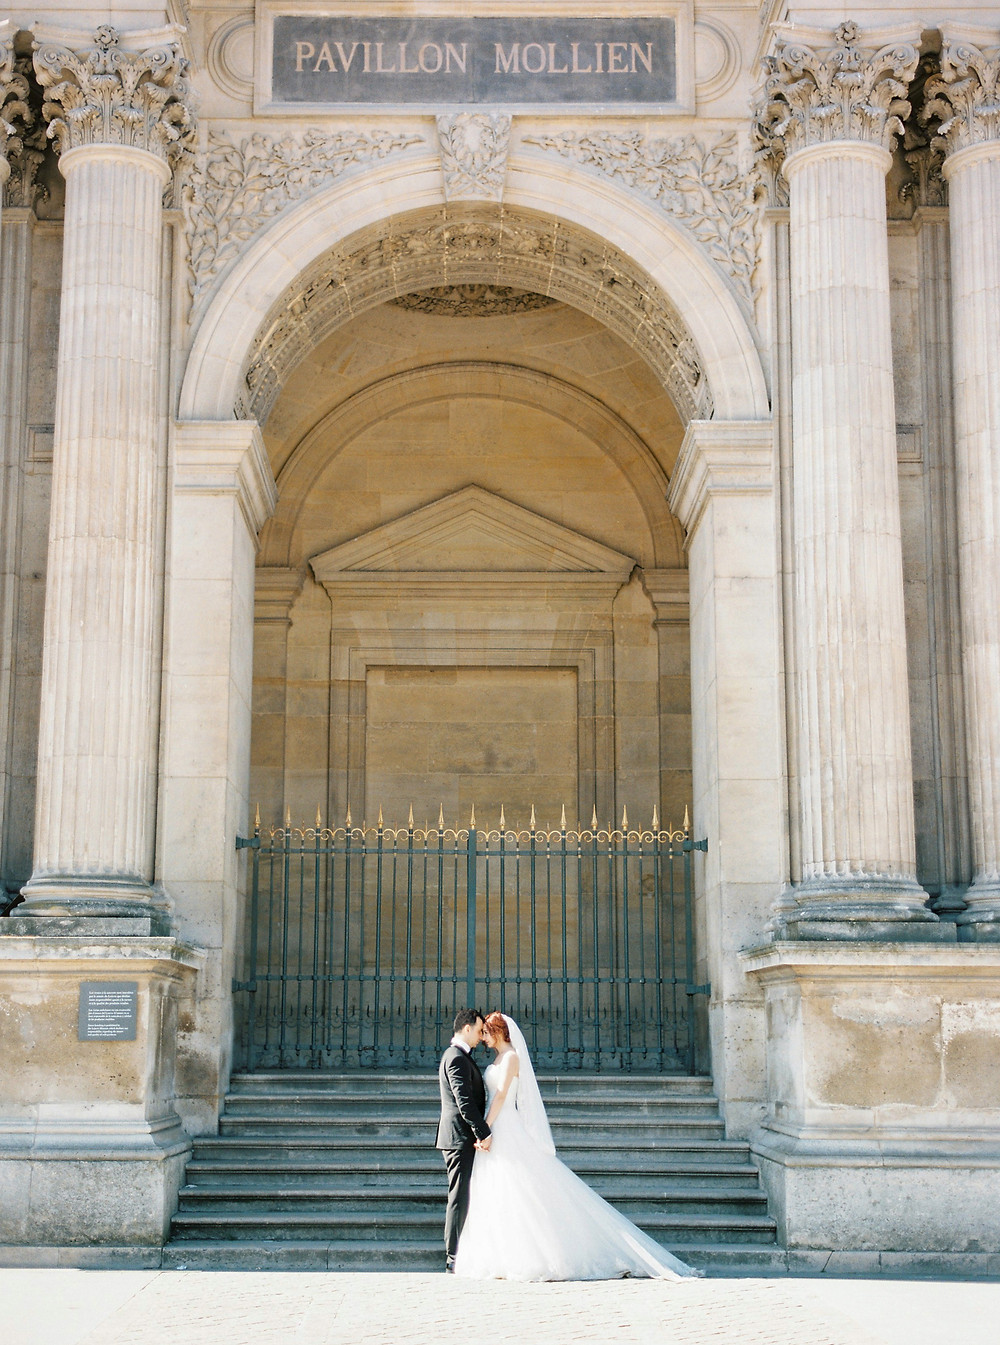 Paris wedding photoshoot in the Louvre